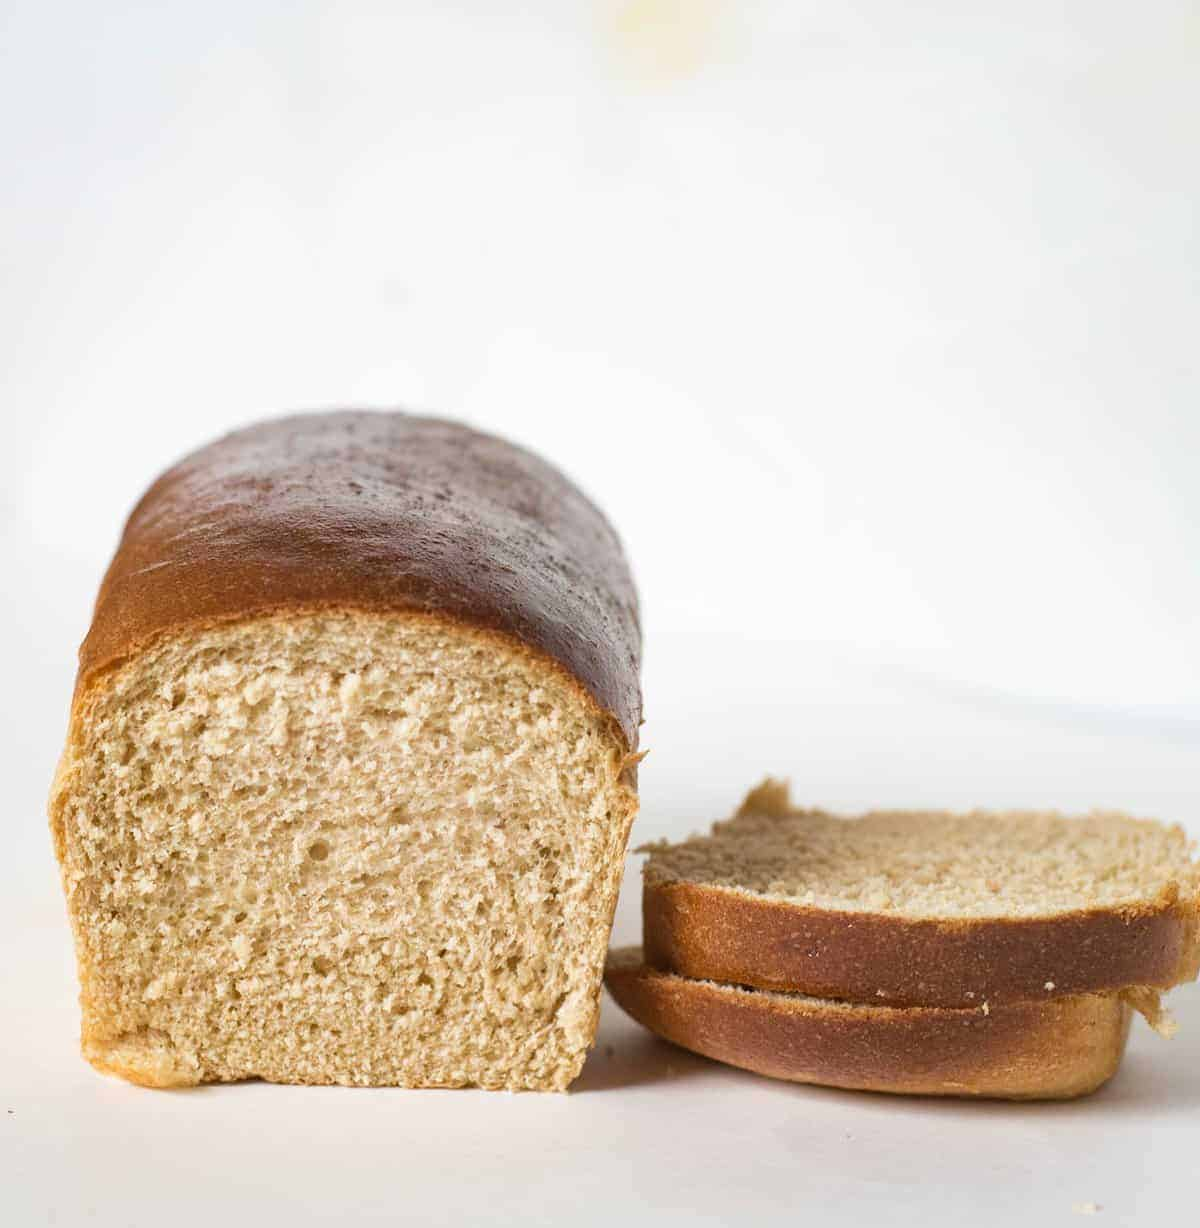 Simple and fool-proof wheat bread recipe that makes four loaves of bread in one batch. This recipe comes from my mom and it's a keeper.